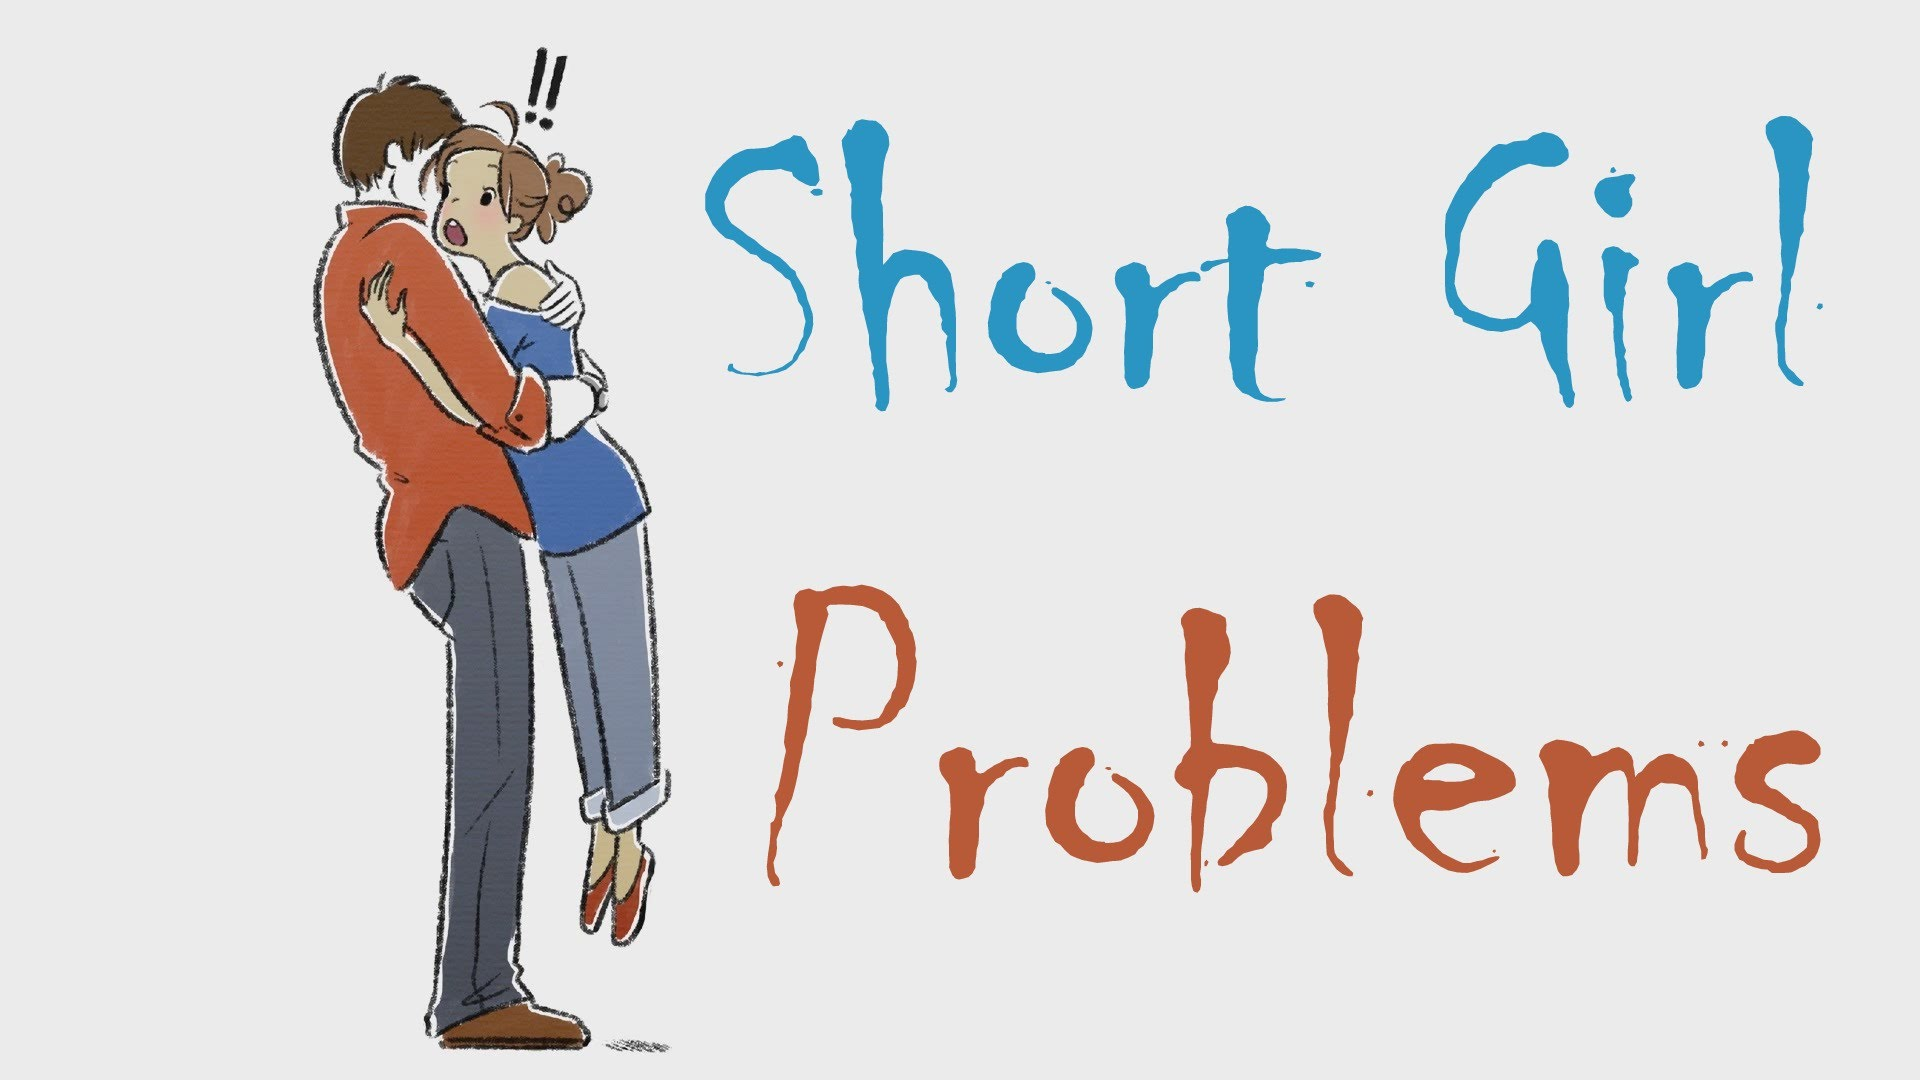 Pros of dating a short girl